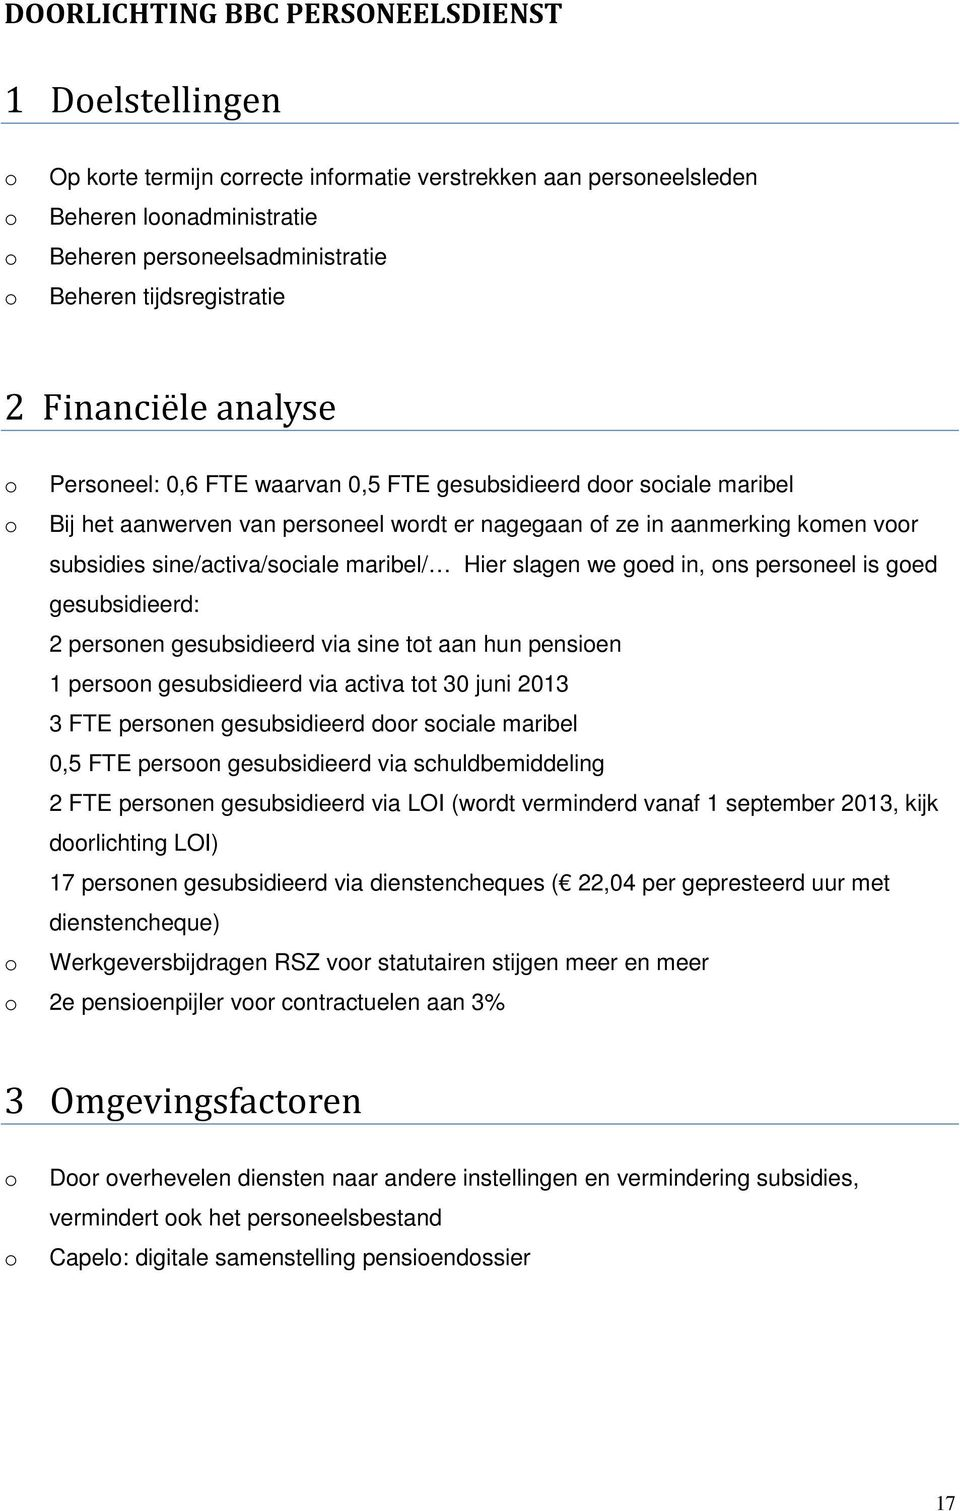 Hier slagen we ged in, ns persneel is ged gesubsidieerd: 2 persnen gesubsidieerd via sine tt aan hun pensien 1 persn gesubsidieerd via activa tt 30 juni 2013 3 FTE persnen gesubsidieerd dr sciale